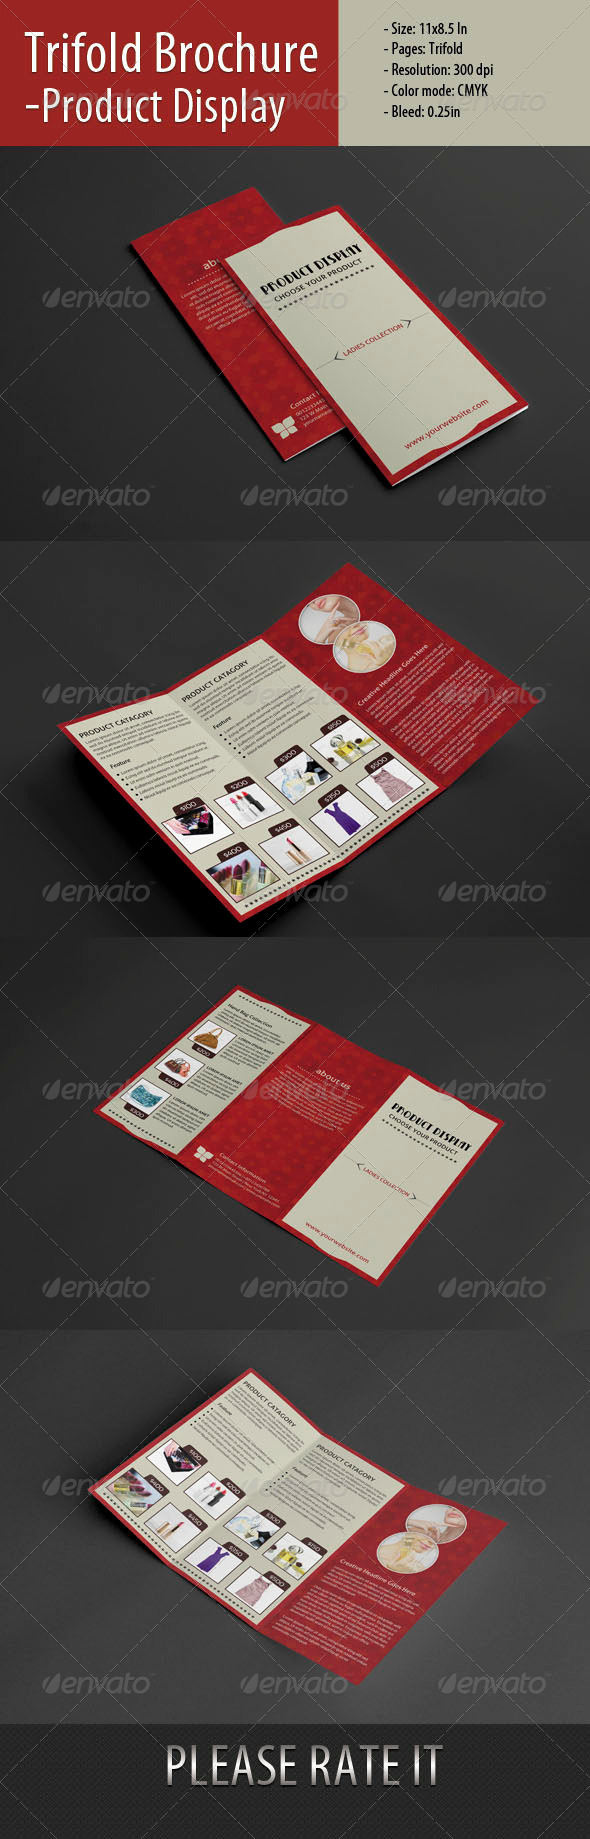 GraphicRiver Trifold Brochure For Product Display-2 5351052